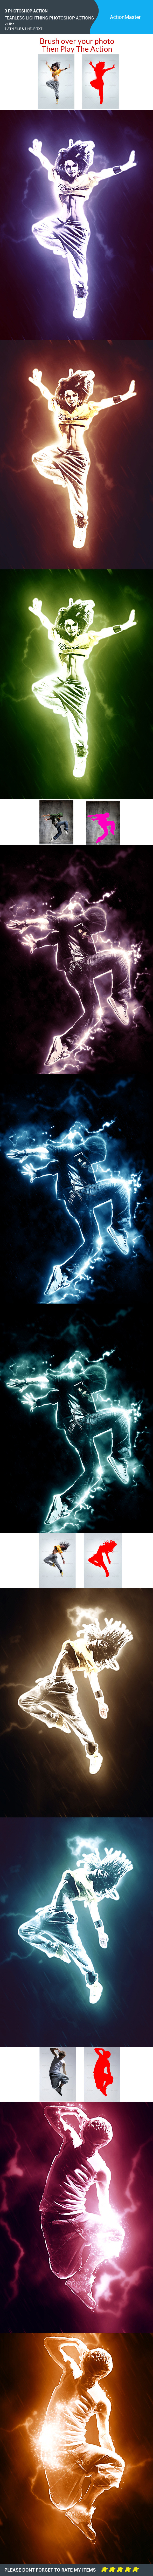 Fearless Lightning Photoshop Actions